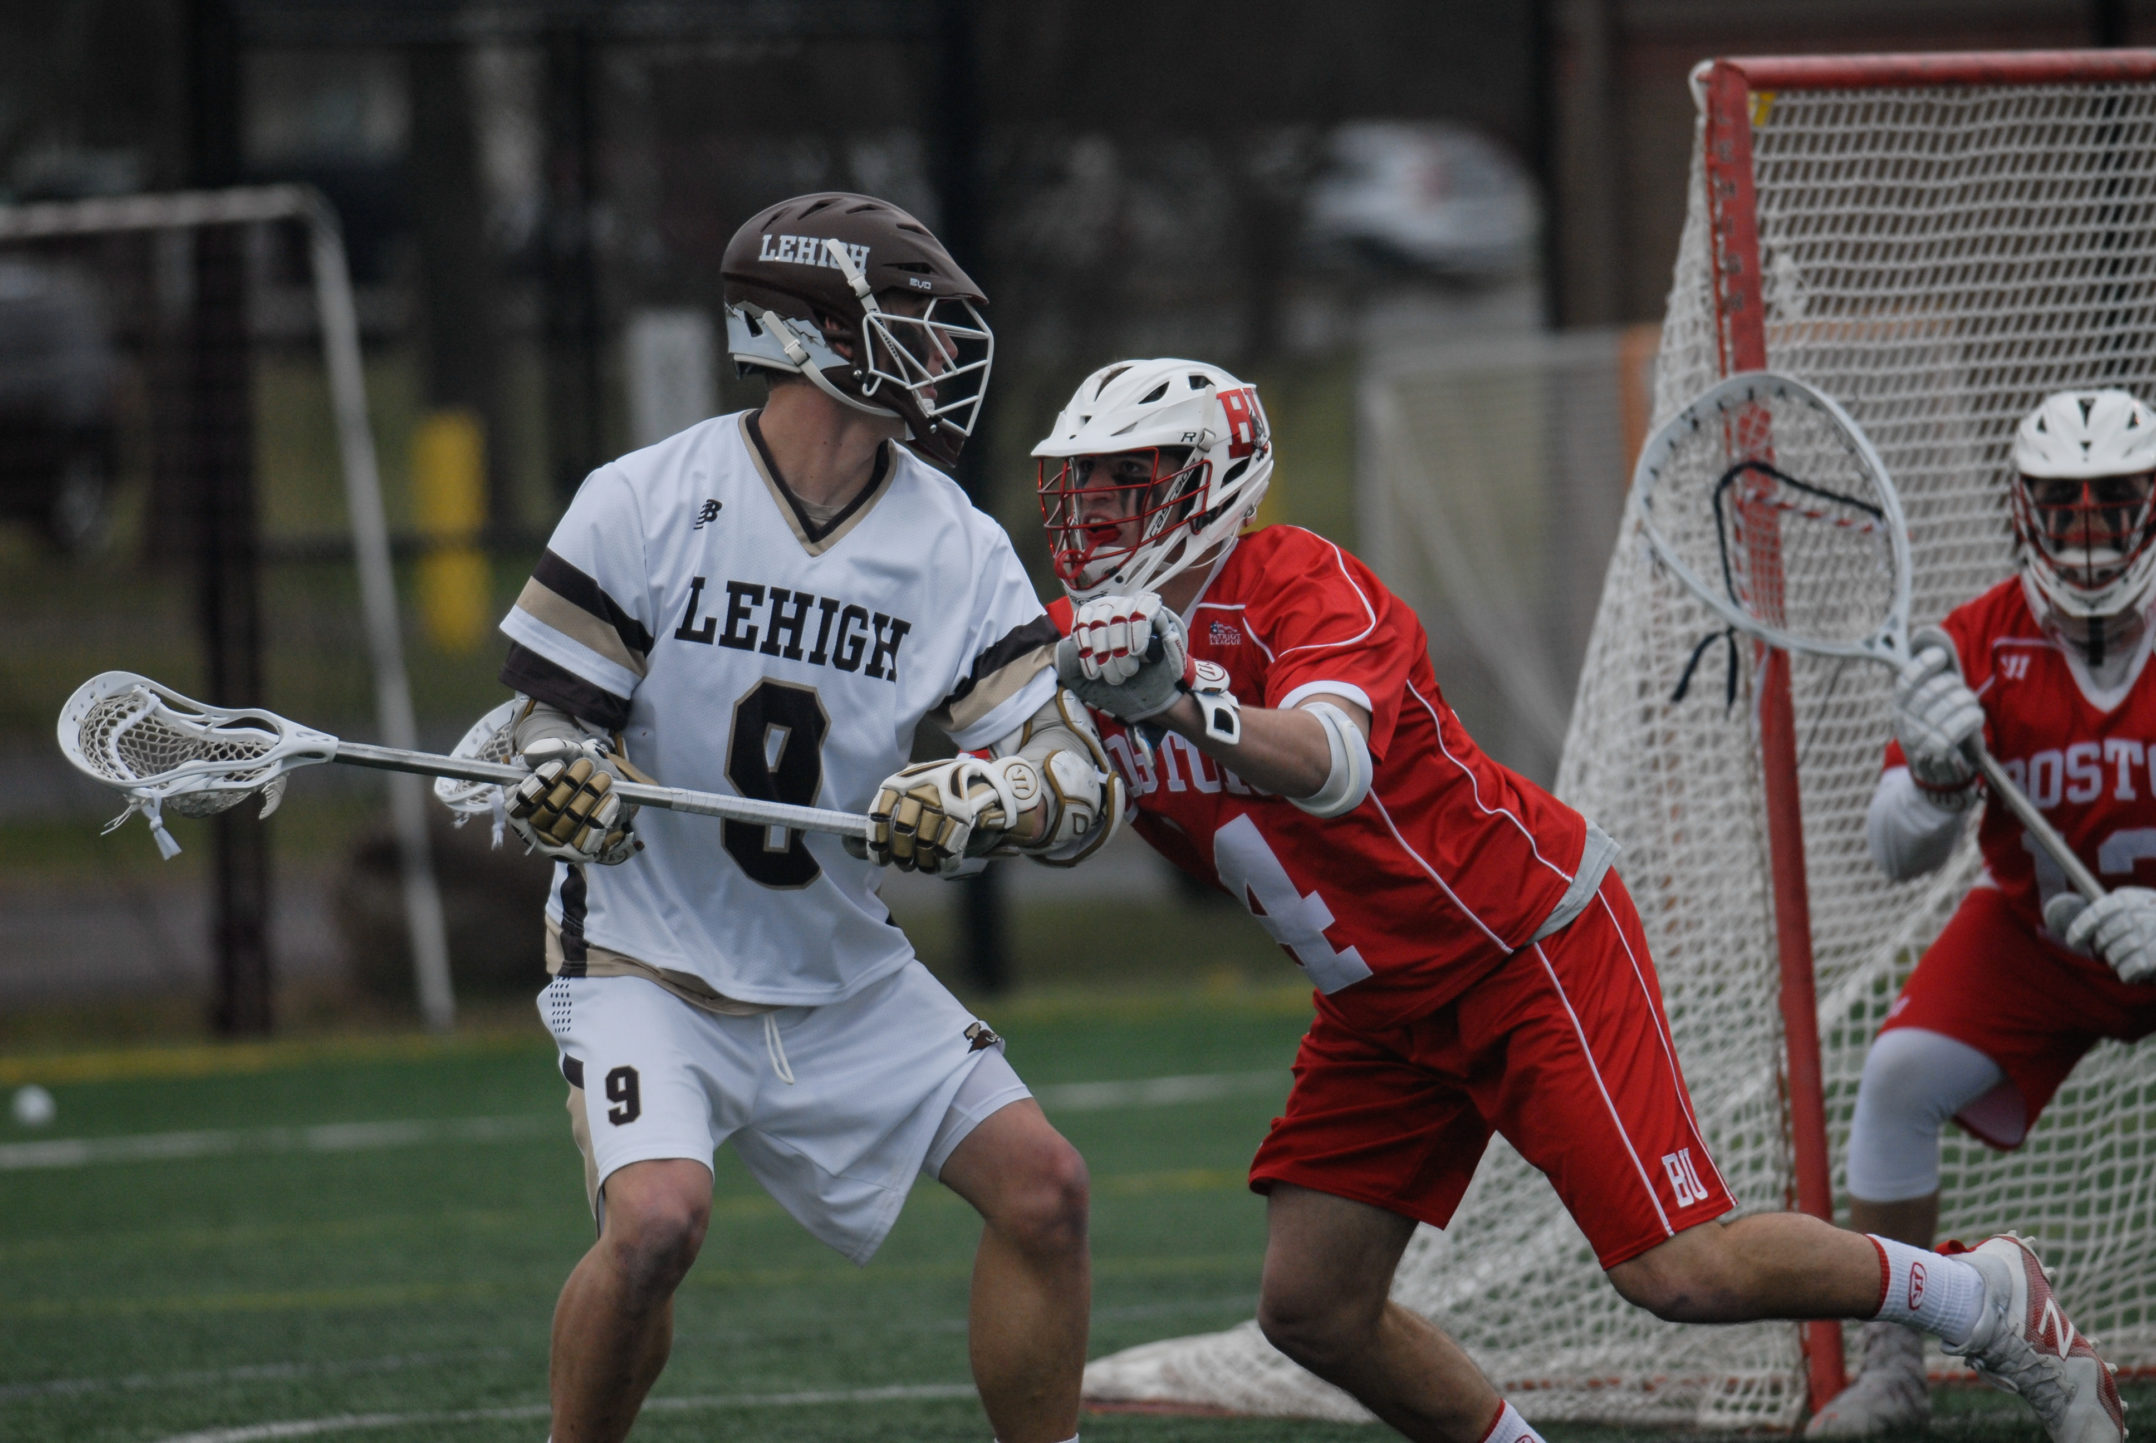 Senior attacker Matt Raposo looks to take a shot around Boston University senior midfielder Brian Badgett during their game on Saturday, April 1, 2017, at the Ulrich Sports Complex. Raposo had two goals and one assist on five shots during the game. (Erik Thomas/B&W Staff)